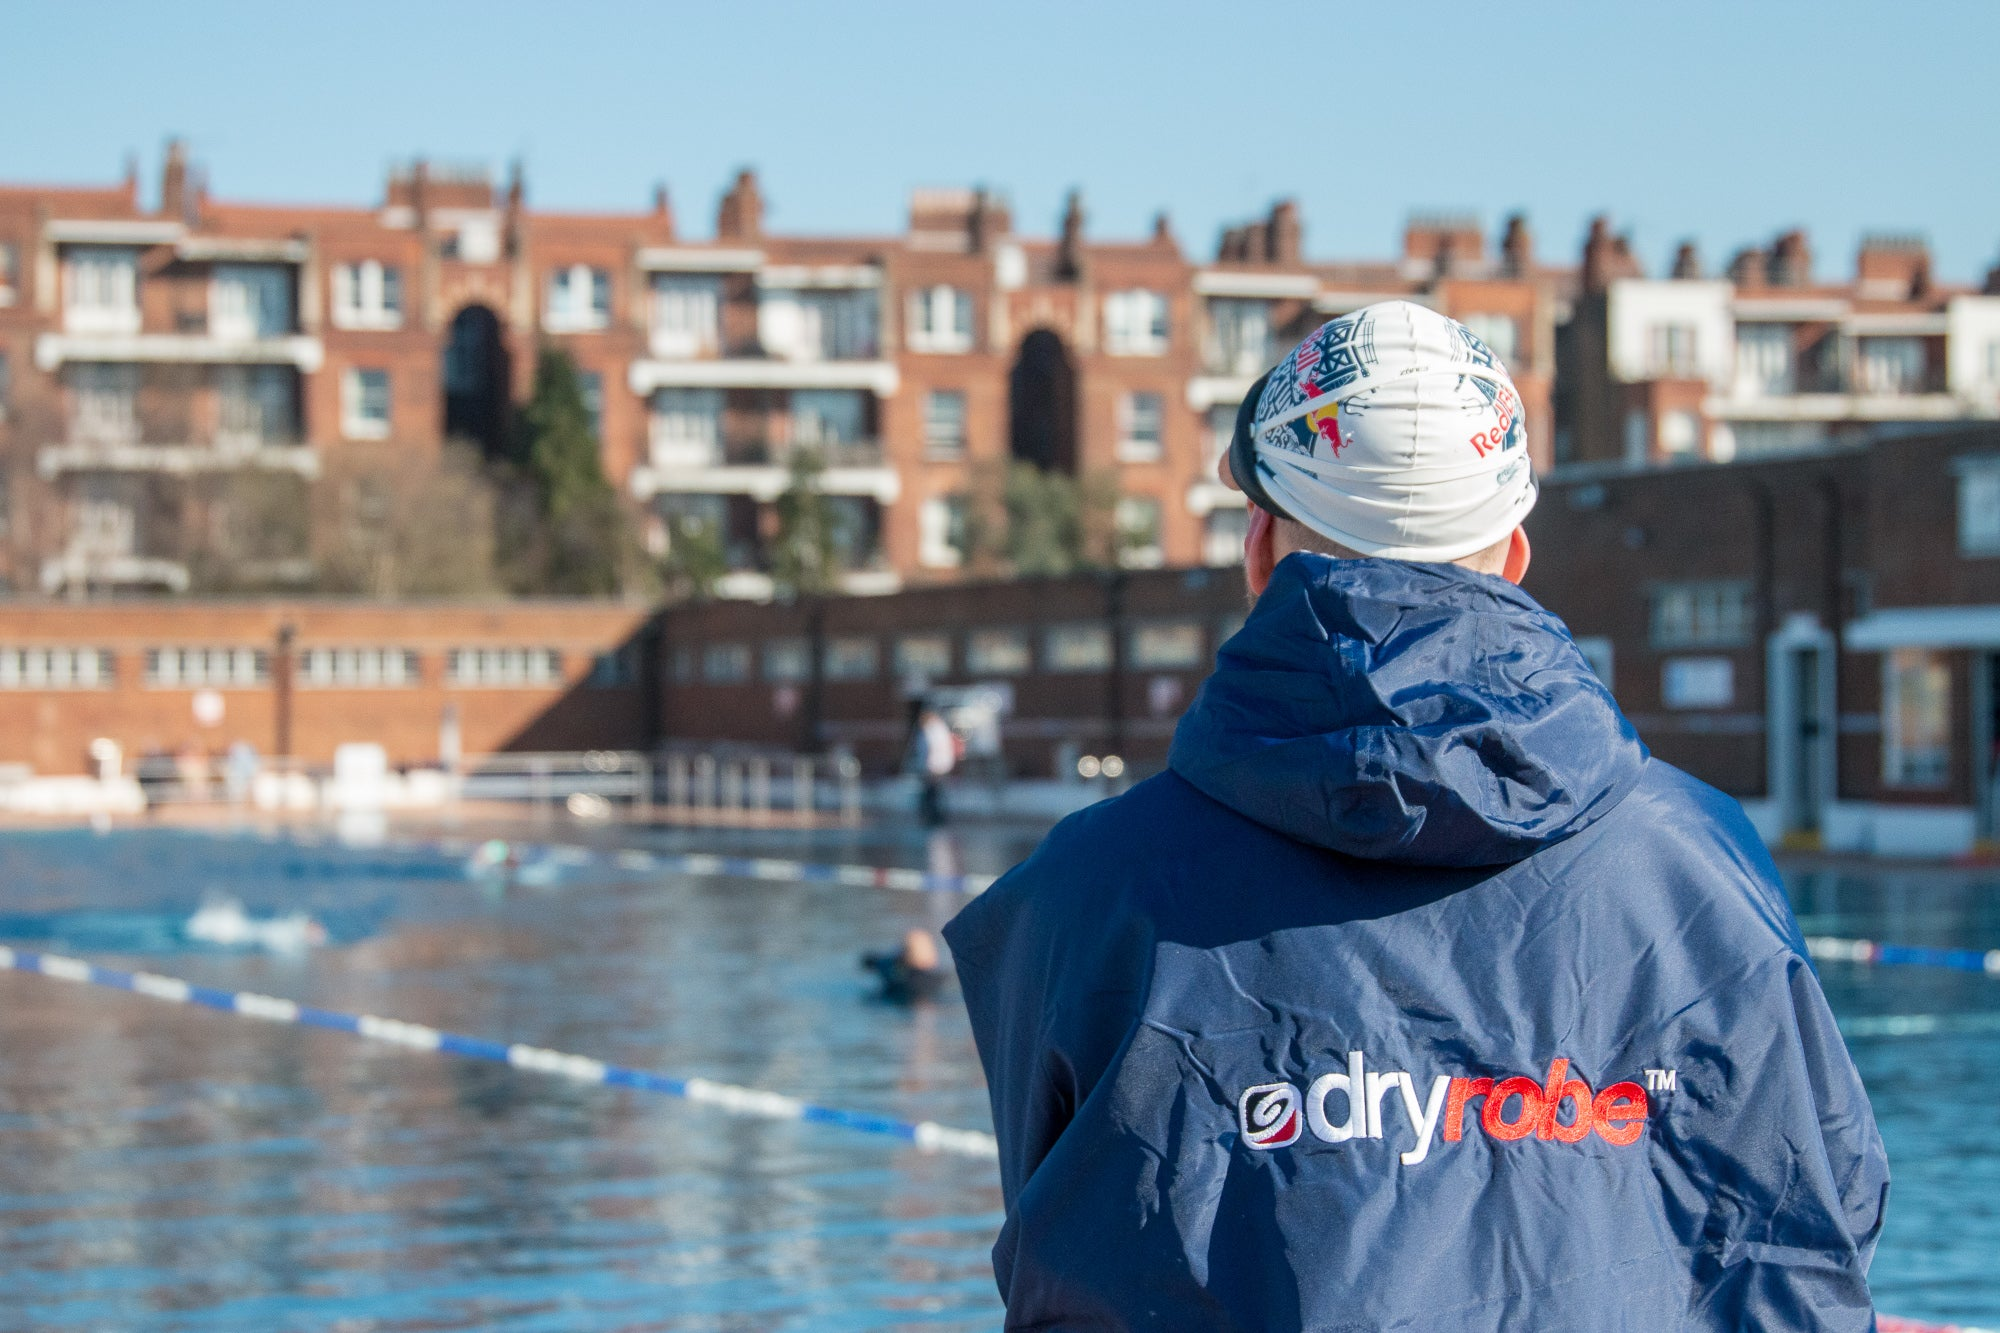 dryrobe being used at Parliament Hill Lido, London